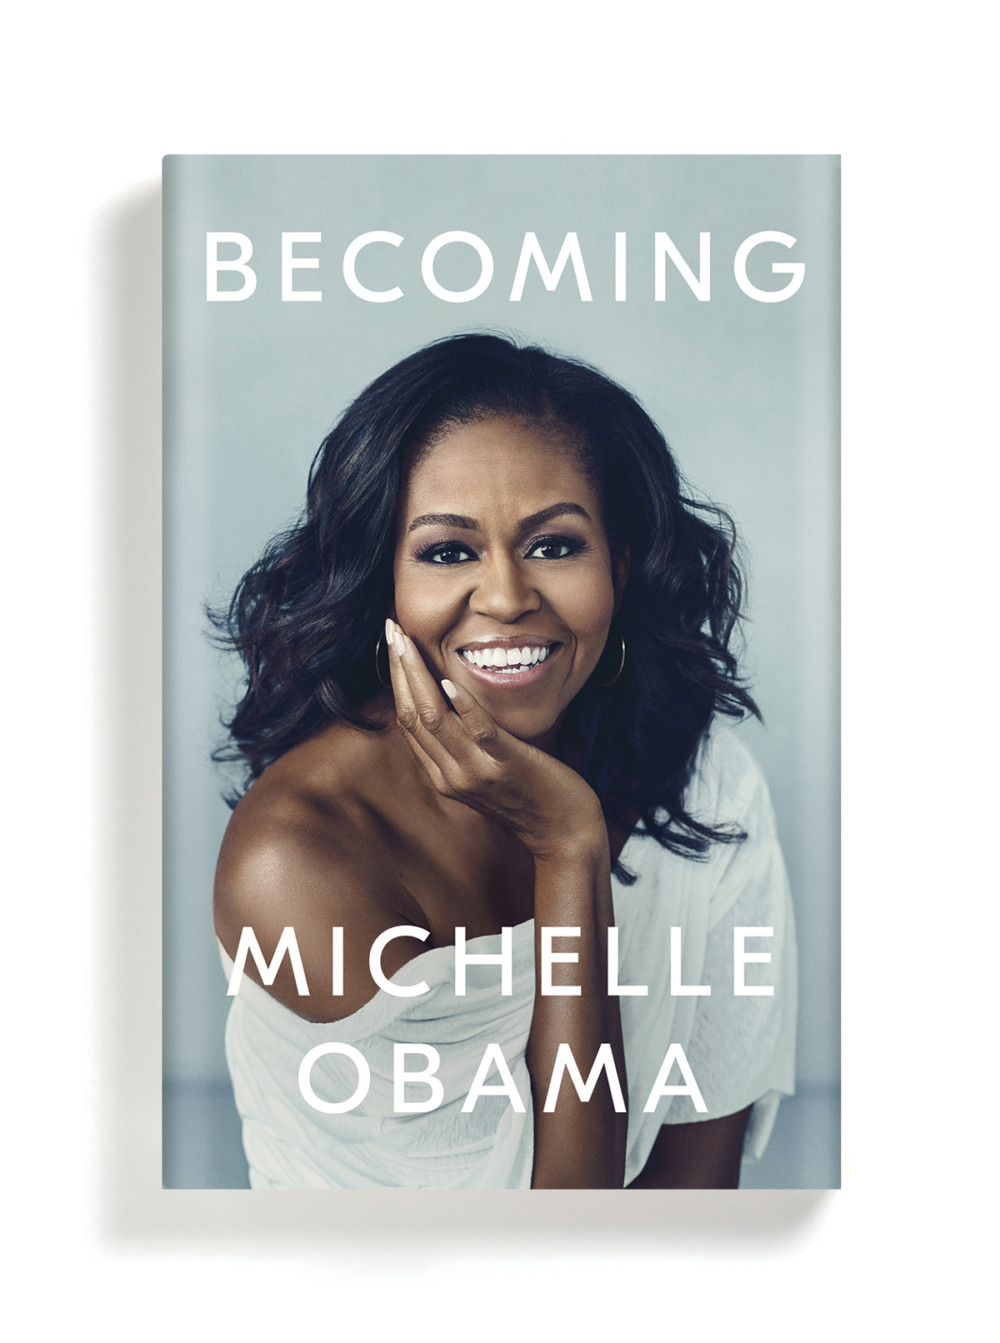 Michelle Obama Announces Tour For 'Becoming'